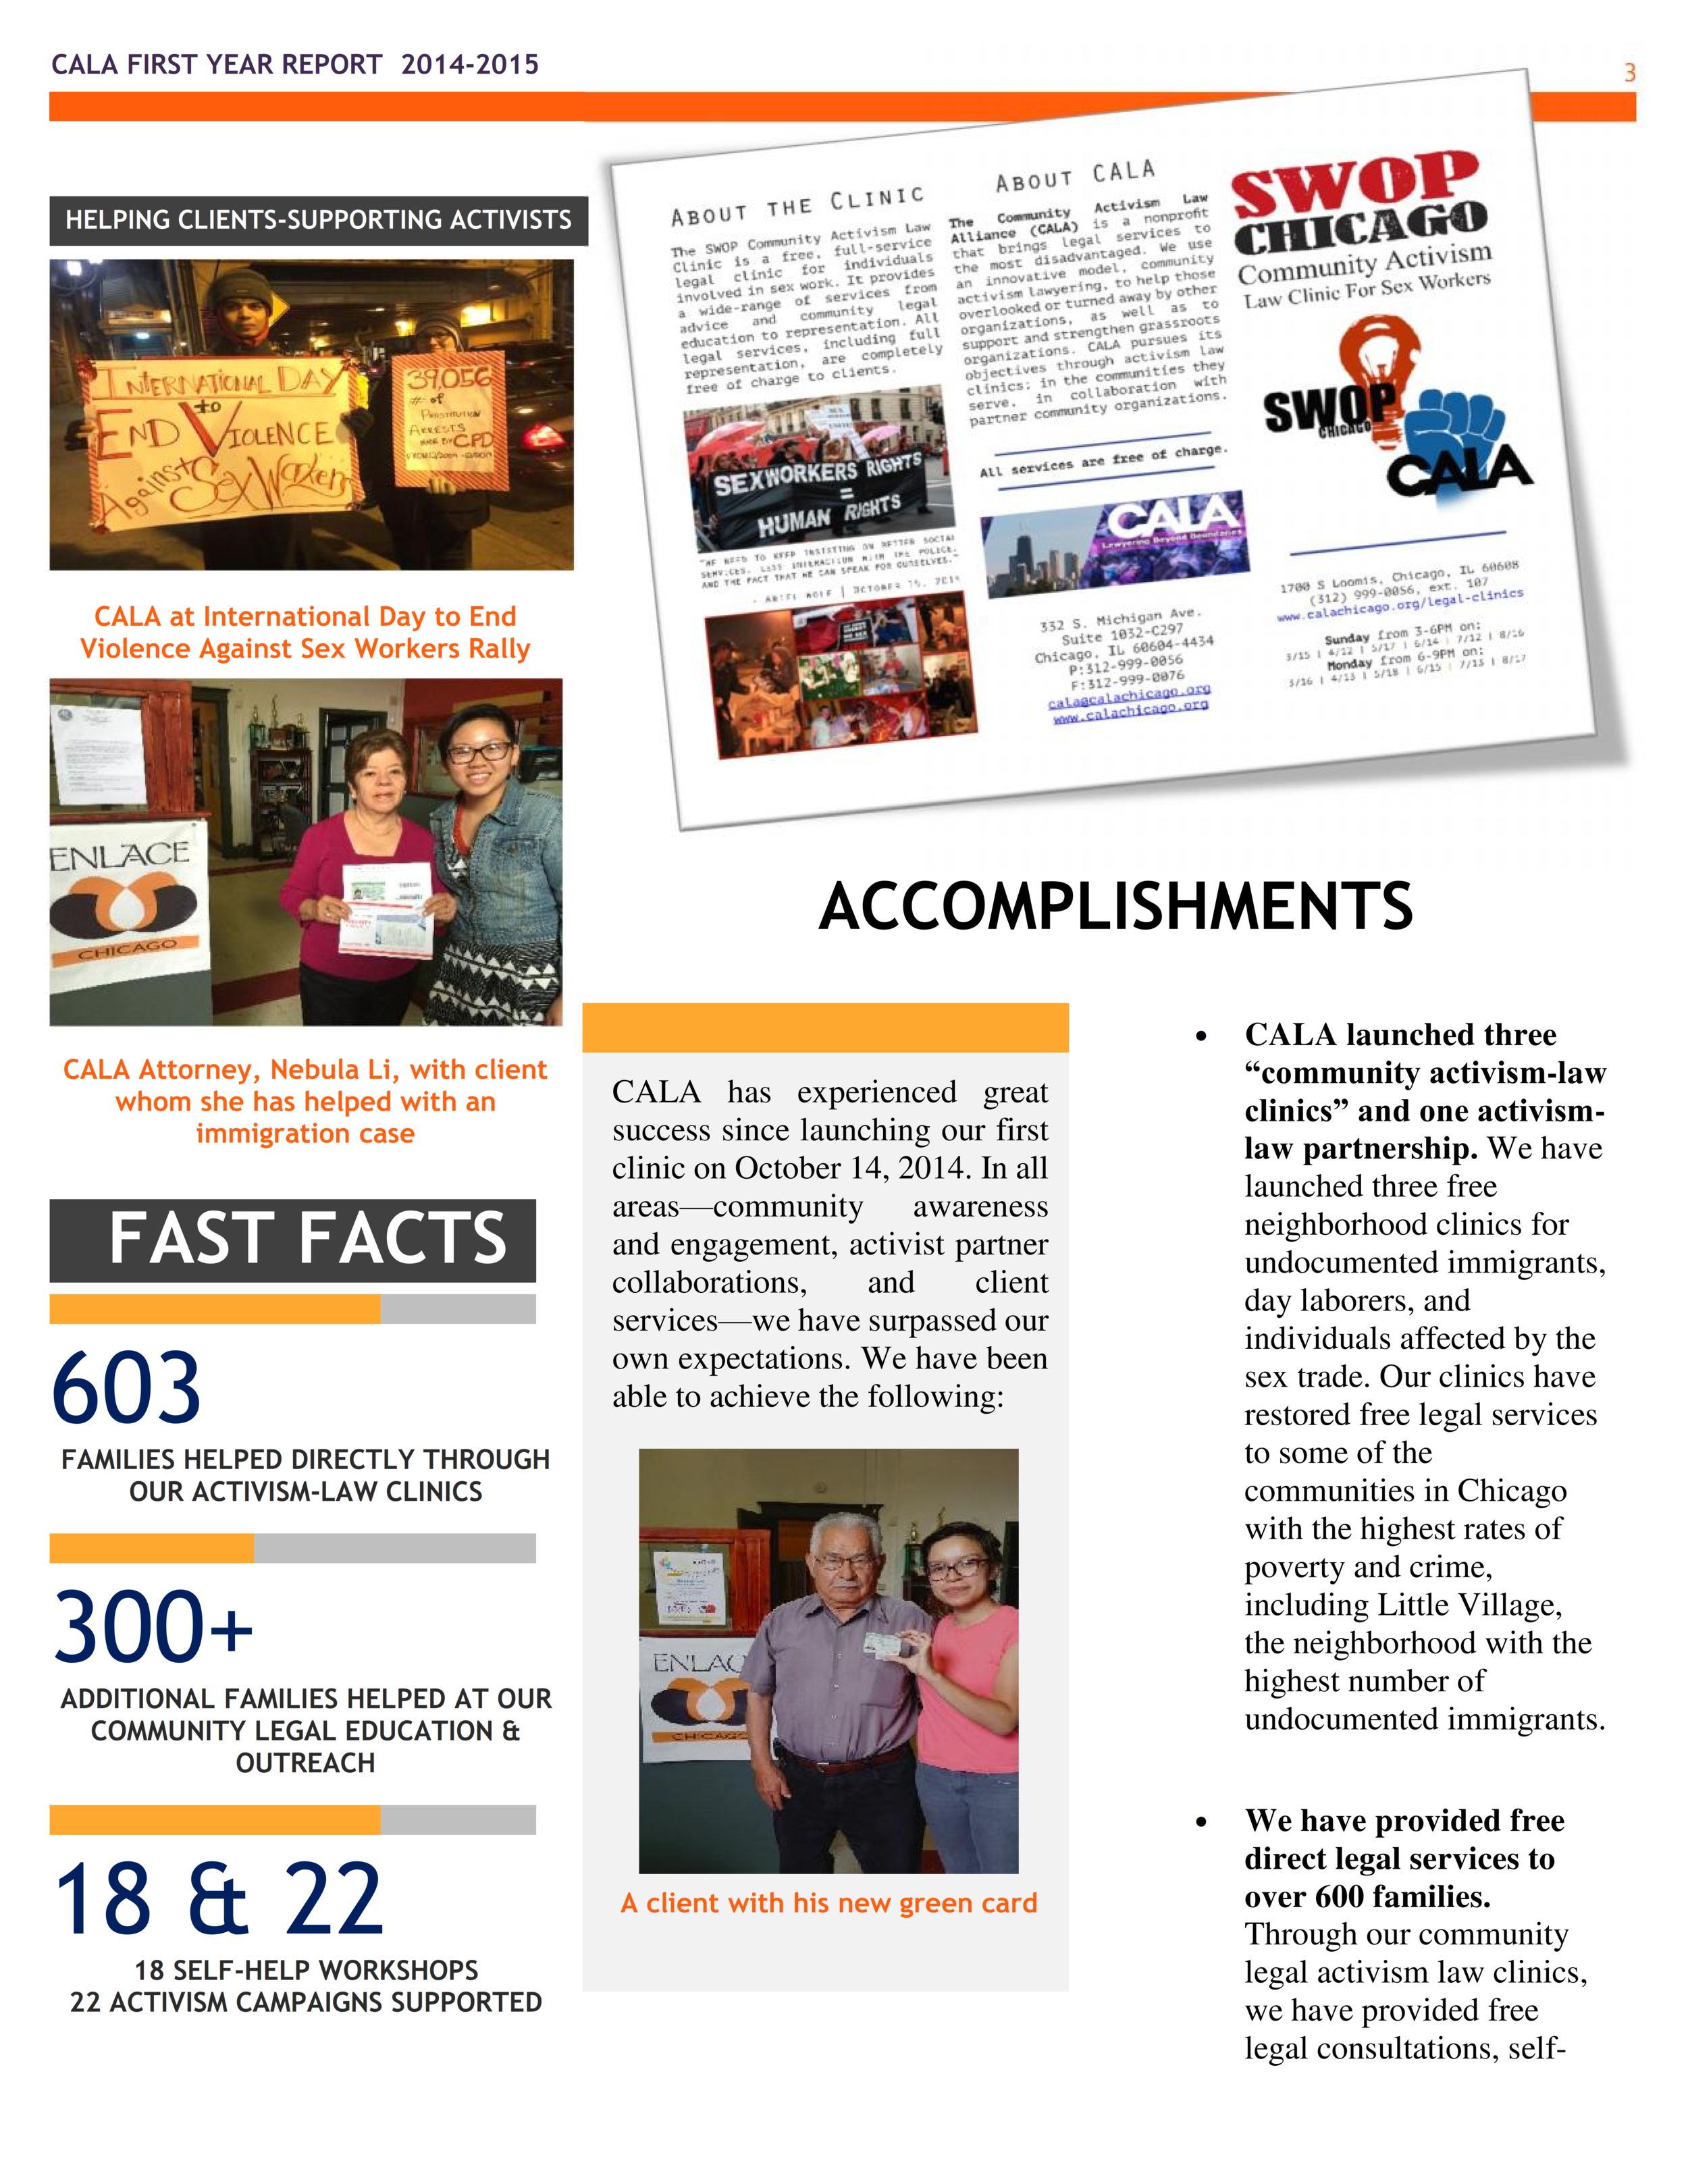 CALA First Year Report_003.png